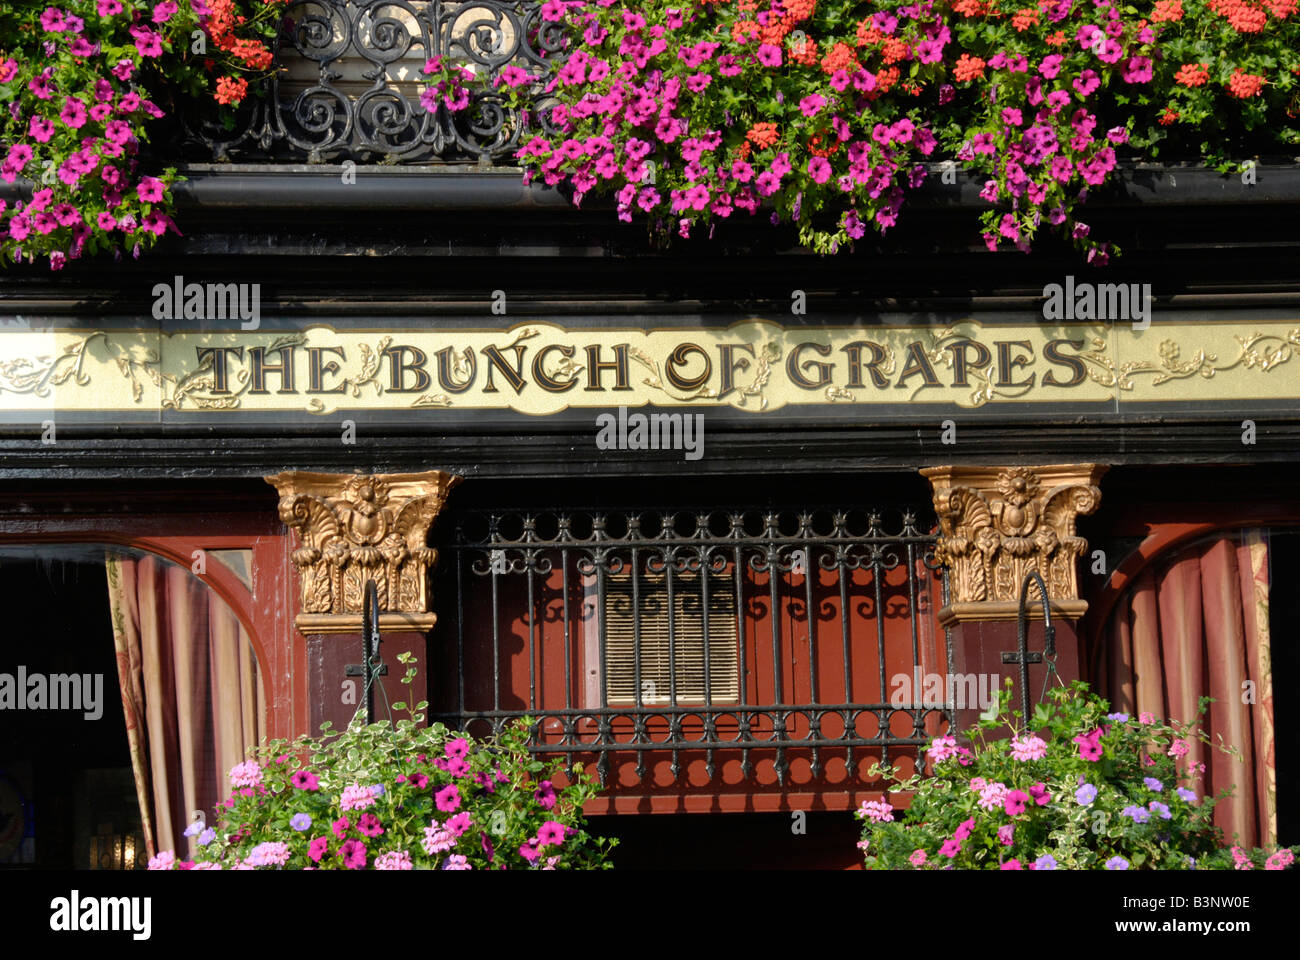 Exterior of the Bunch of Grapes pub in Brompton Road Kensington London England - Stock Image